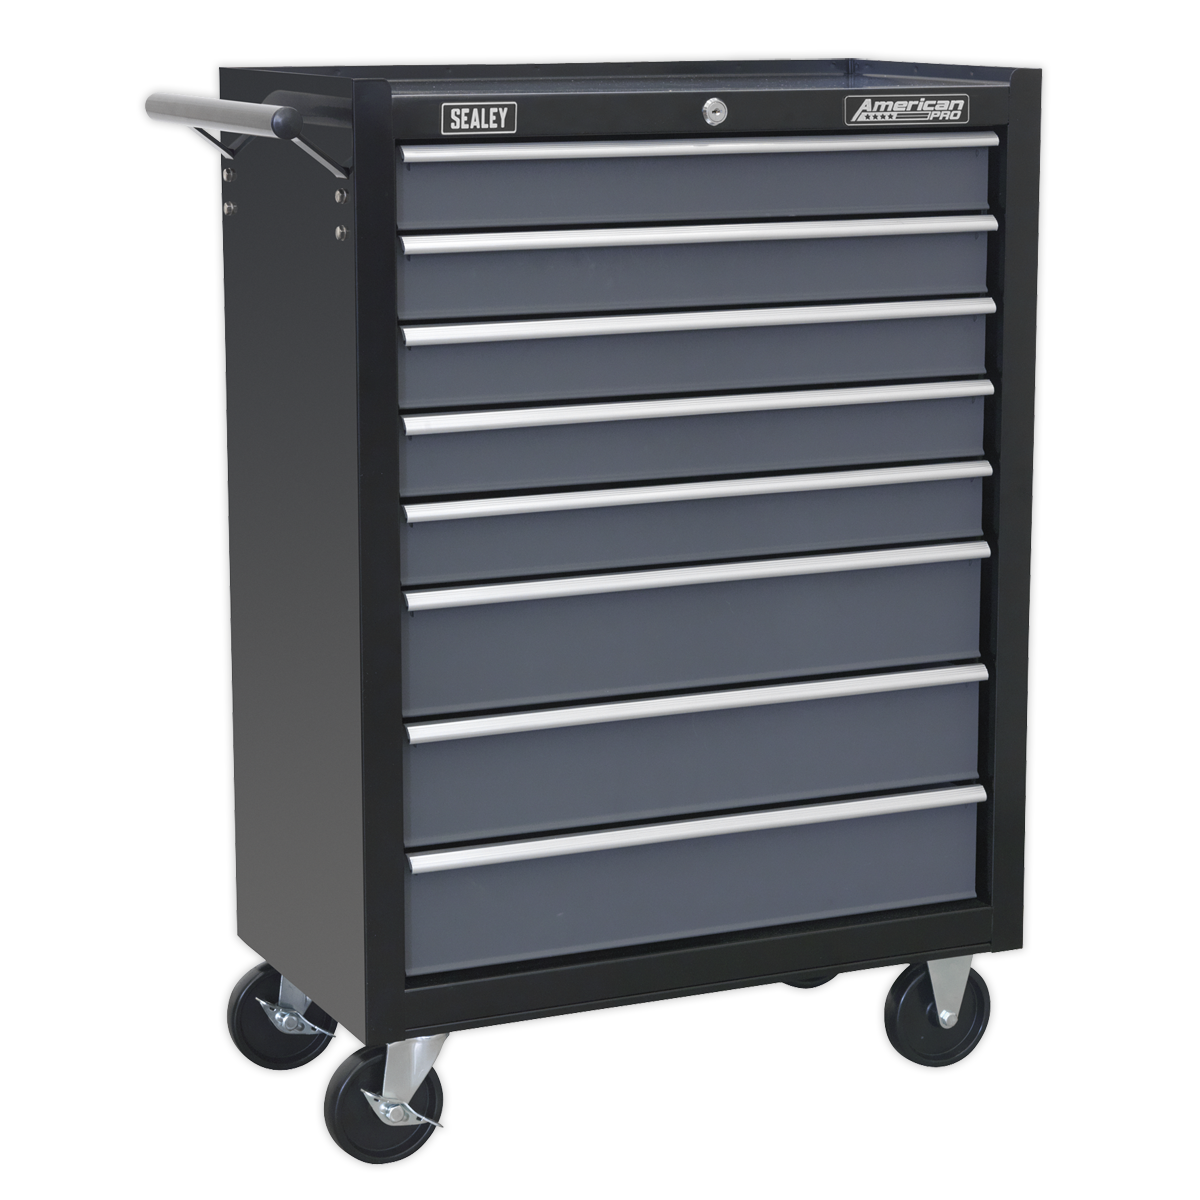 Sealey Rollcab 8 Drawer with Ball Bearing Slides - Black/Grey AP3508TB | Manufactured with double skin side walls for extra strength and finished in smooth, hi-gloss, triple baked enamel. | toolforce.ie